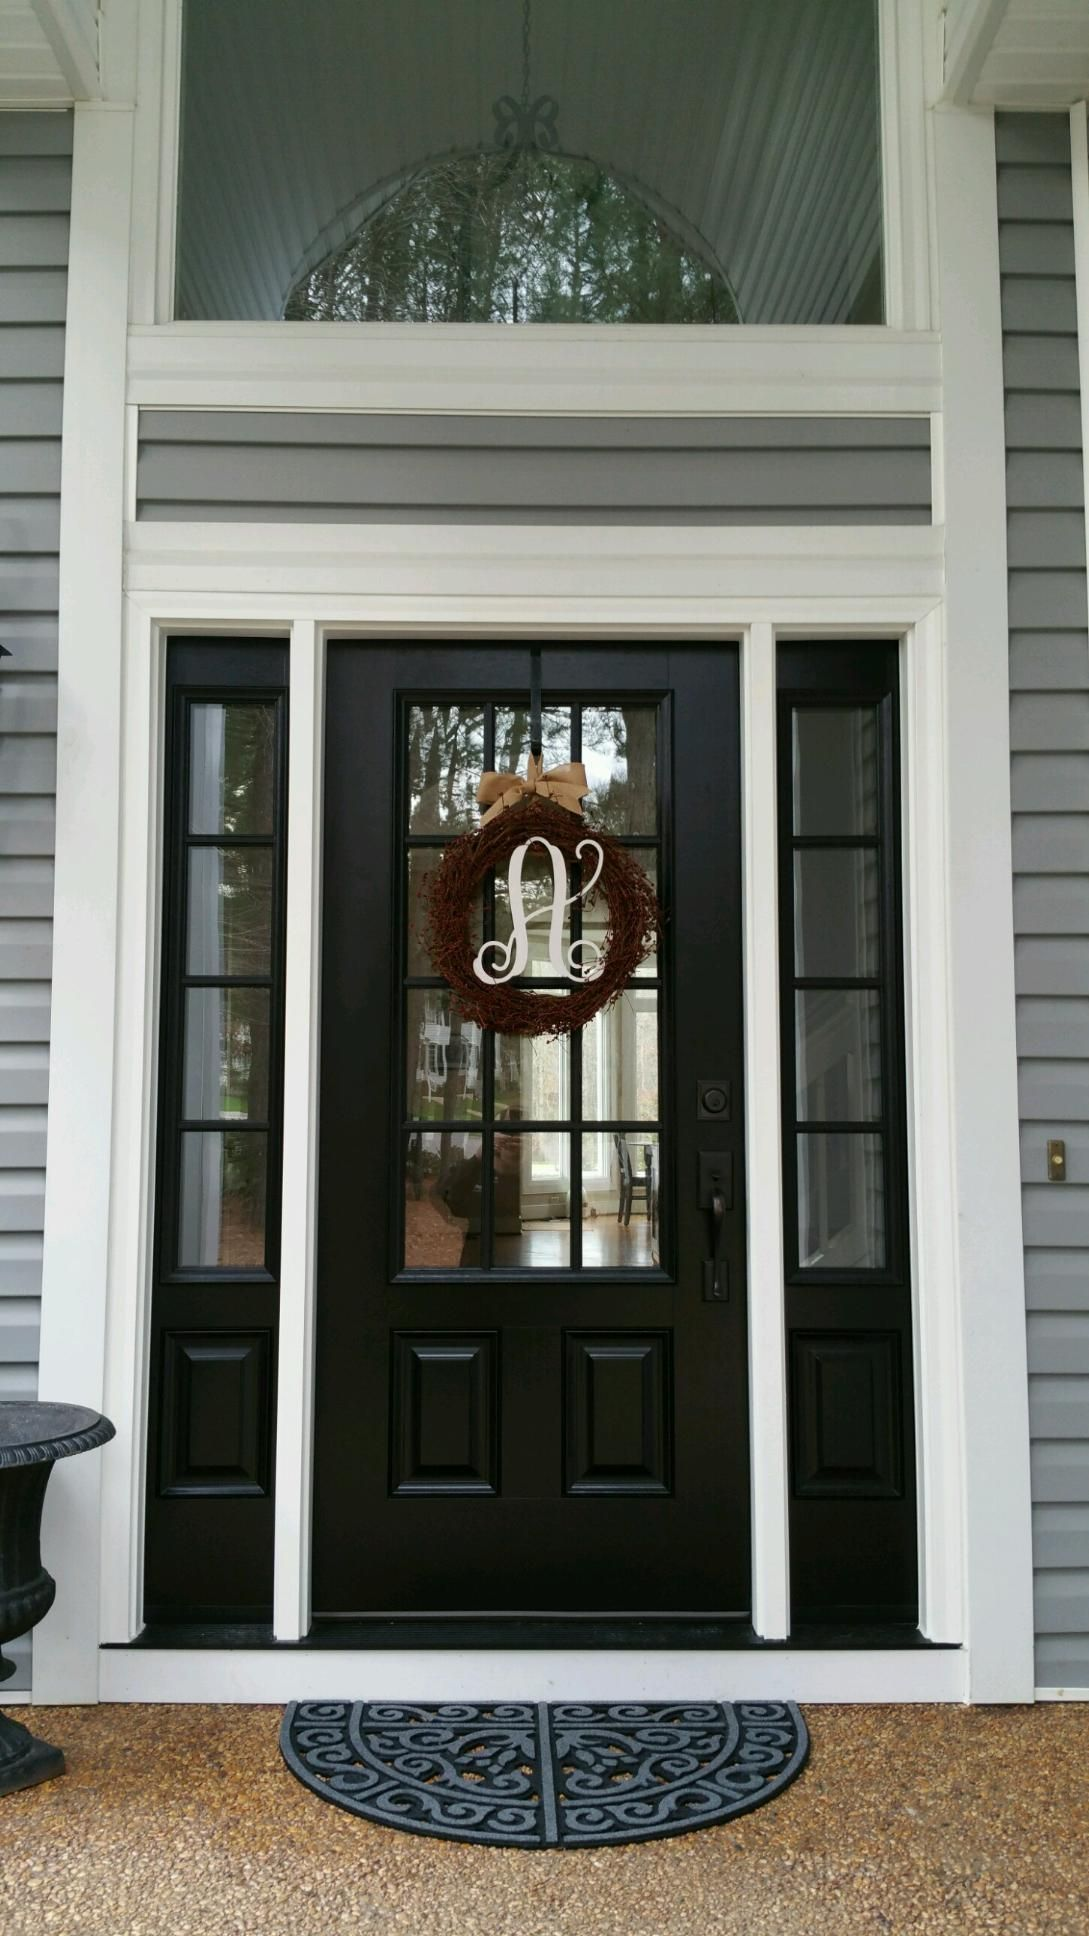 black glass front door. Model 440 Signet Fiberglass Front Entry Door--Coal Black With Aged Bronze Finish Hardware Glass Door